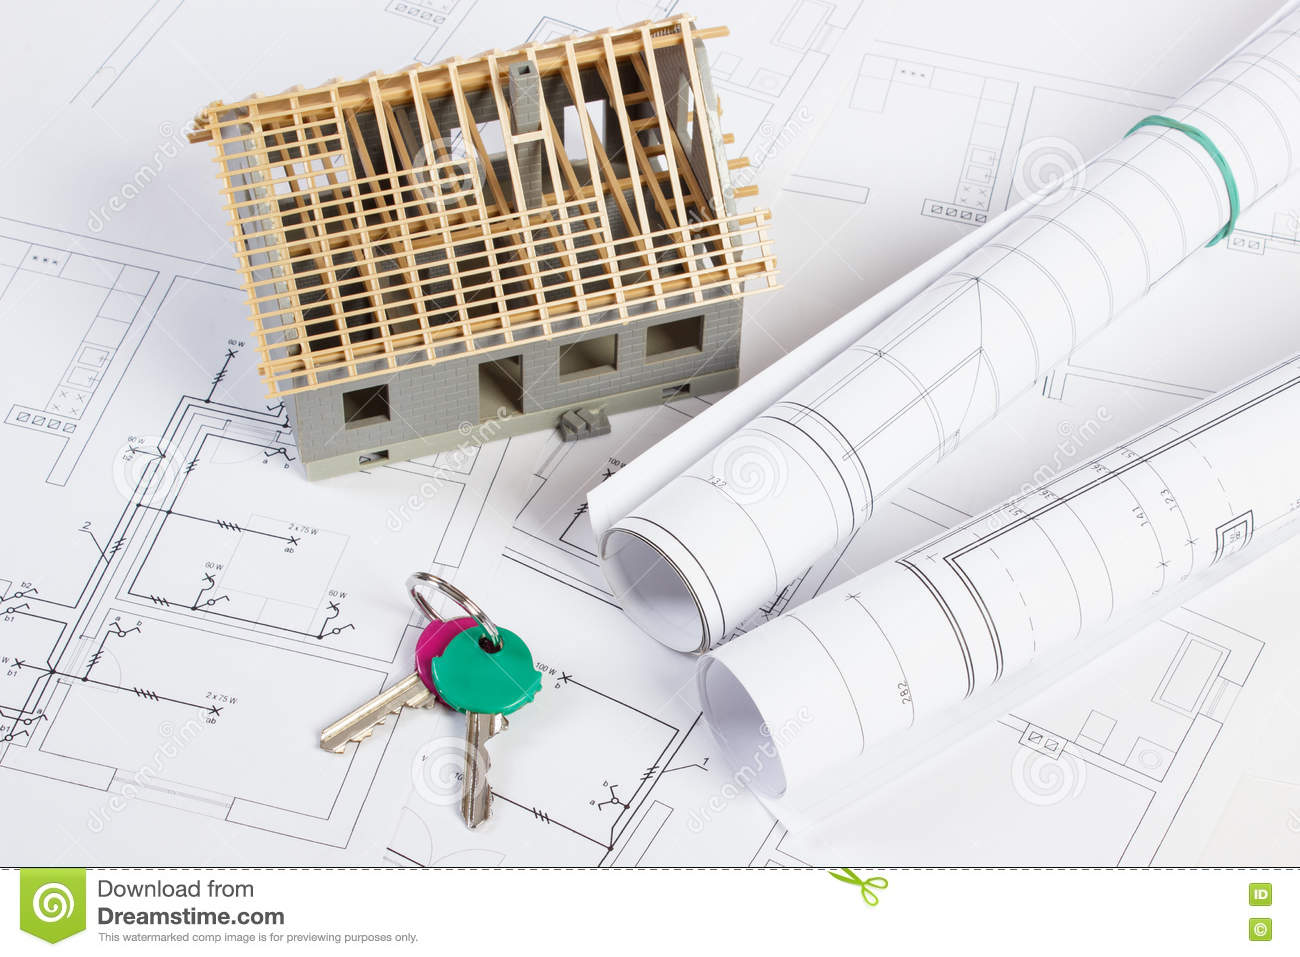 Home Keys Small House Under Construction And Electrical Drawings Diagram Building Concept